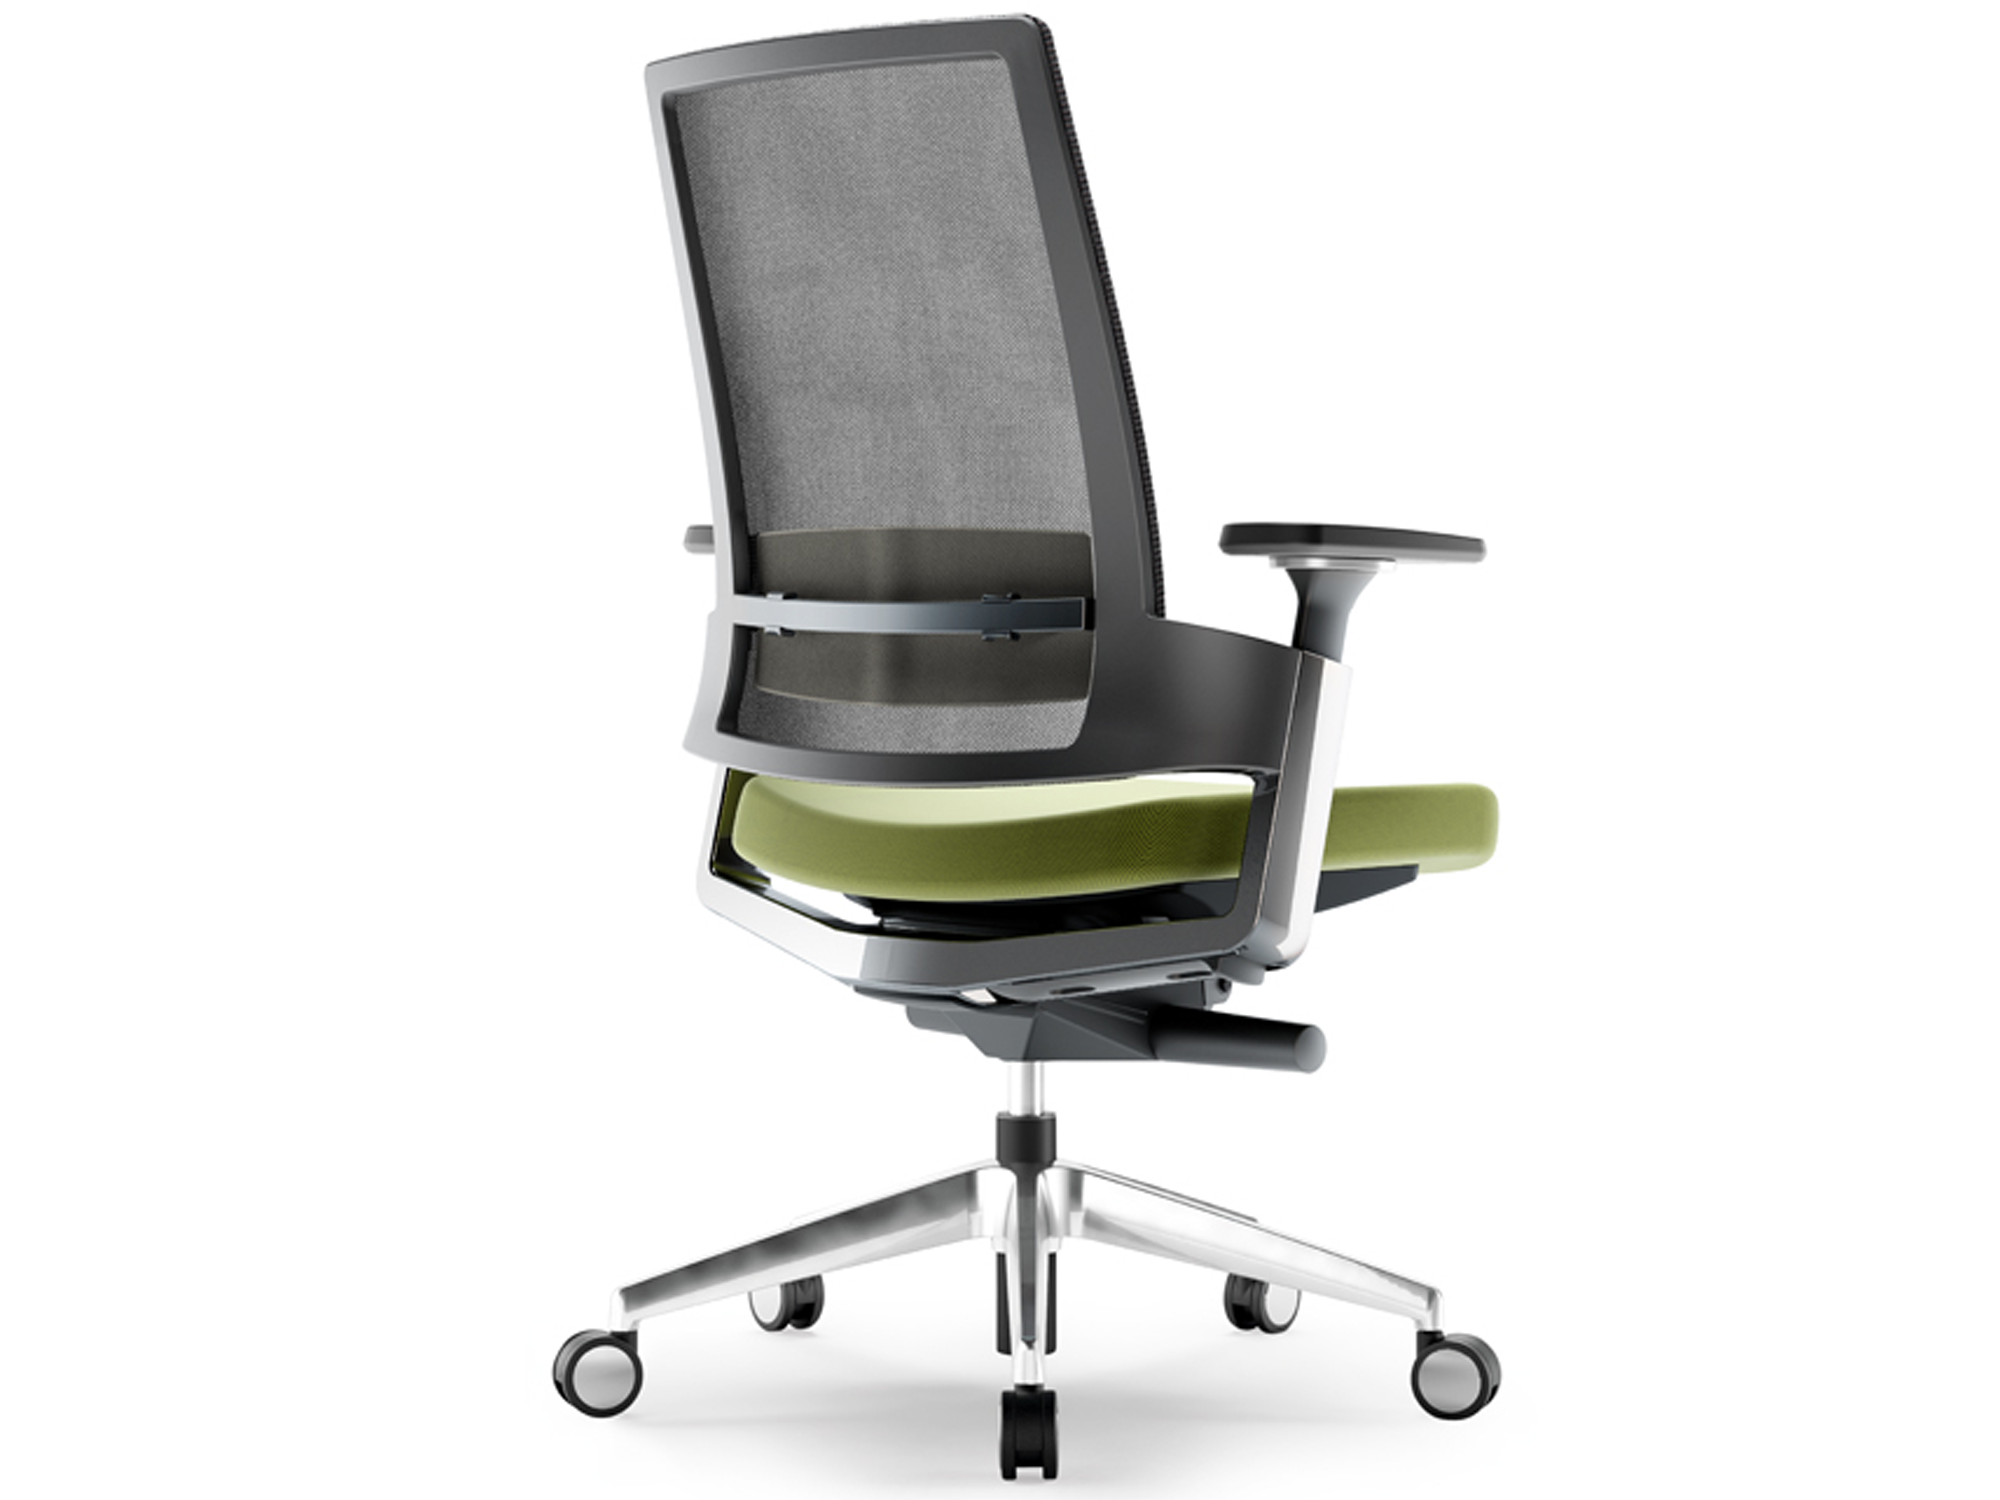 Ergonomic_chair_16.jpg